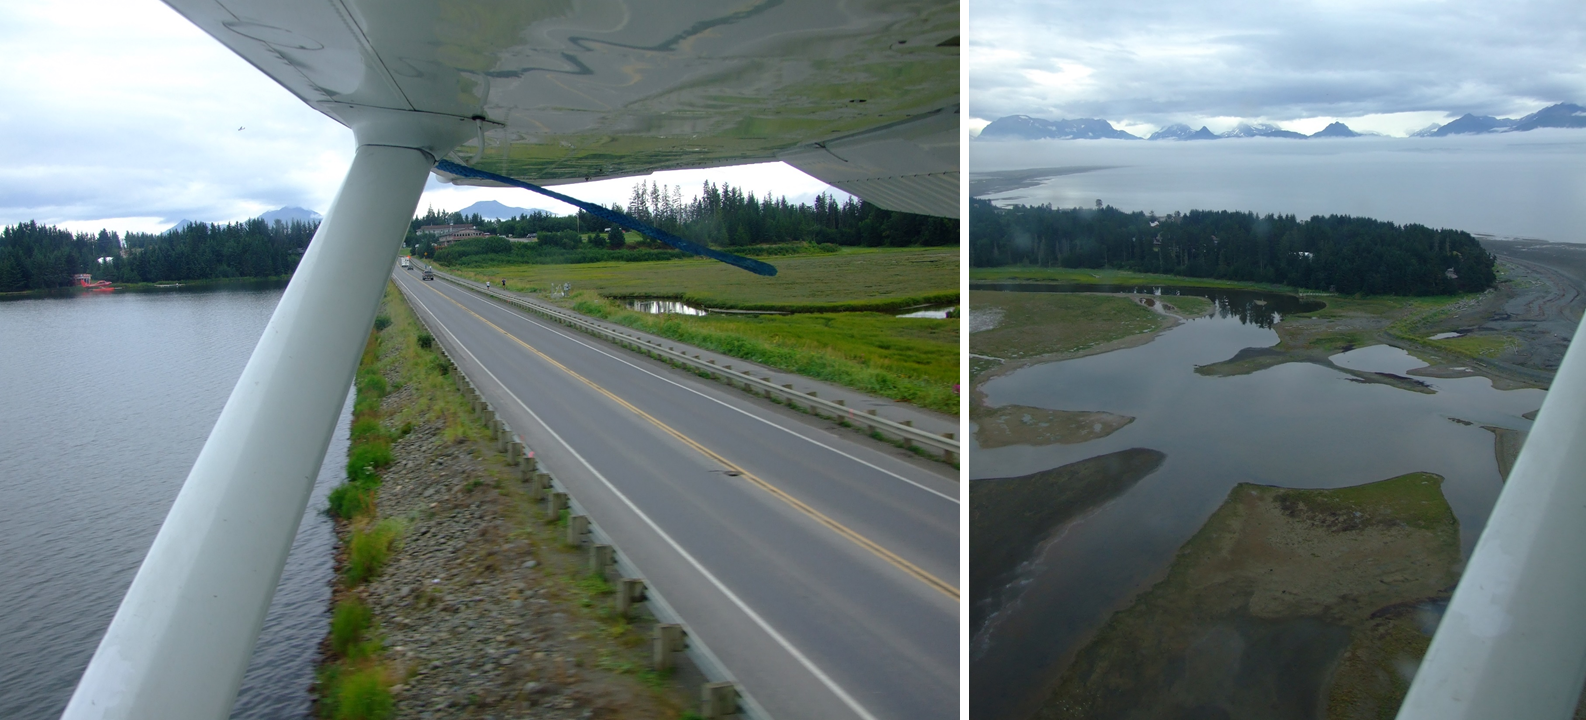 Sweeping over Bishops Beach, Beluga Slough (right image) and the AK1 (left image) we made our safe return to Steller Air (spot the red Steller Air floatplane in the left image).